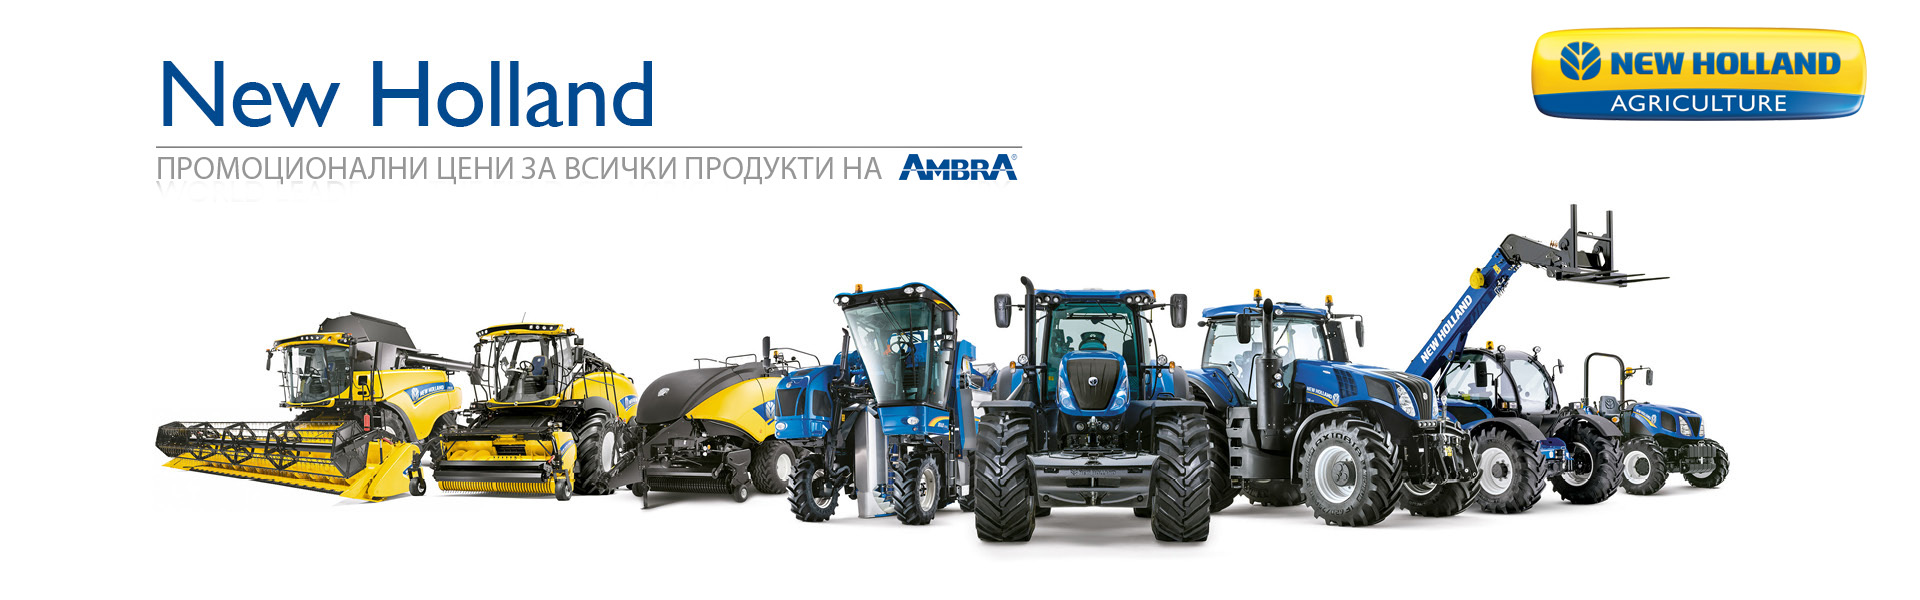 Промоционални цени за Моторни масла и греси Ambra New Holland